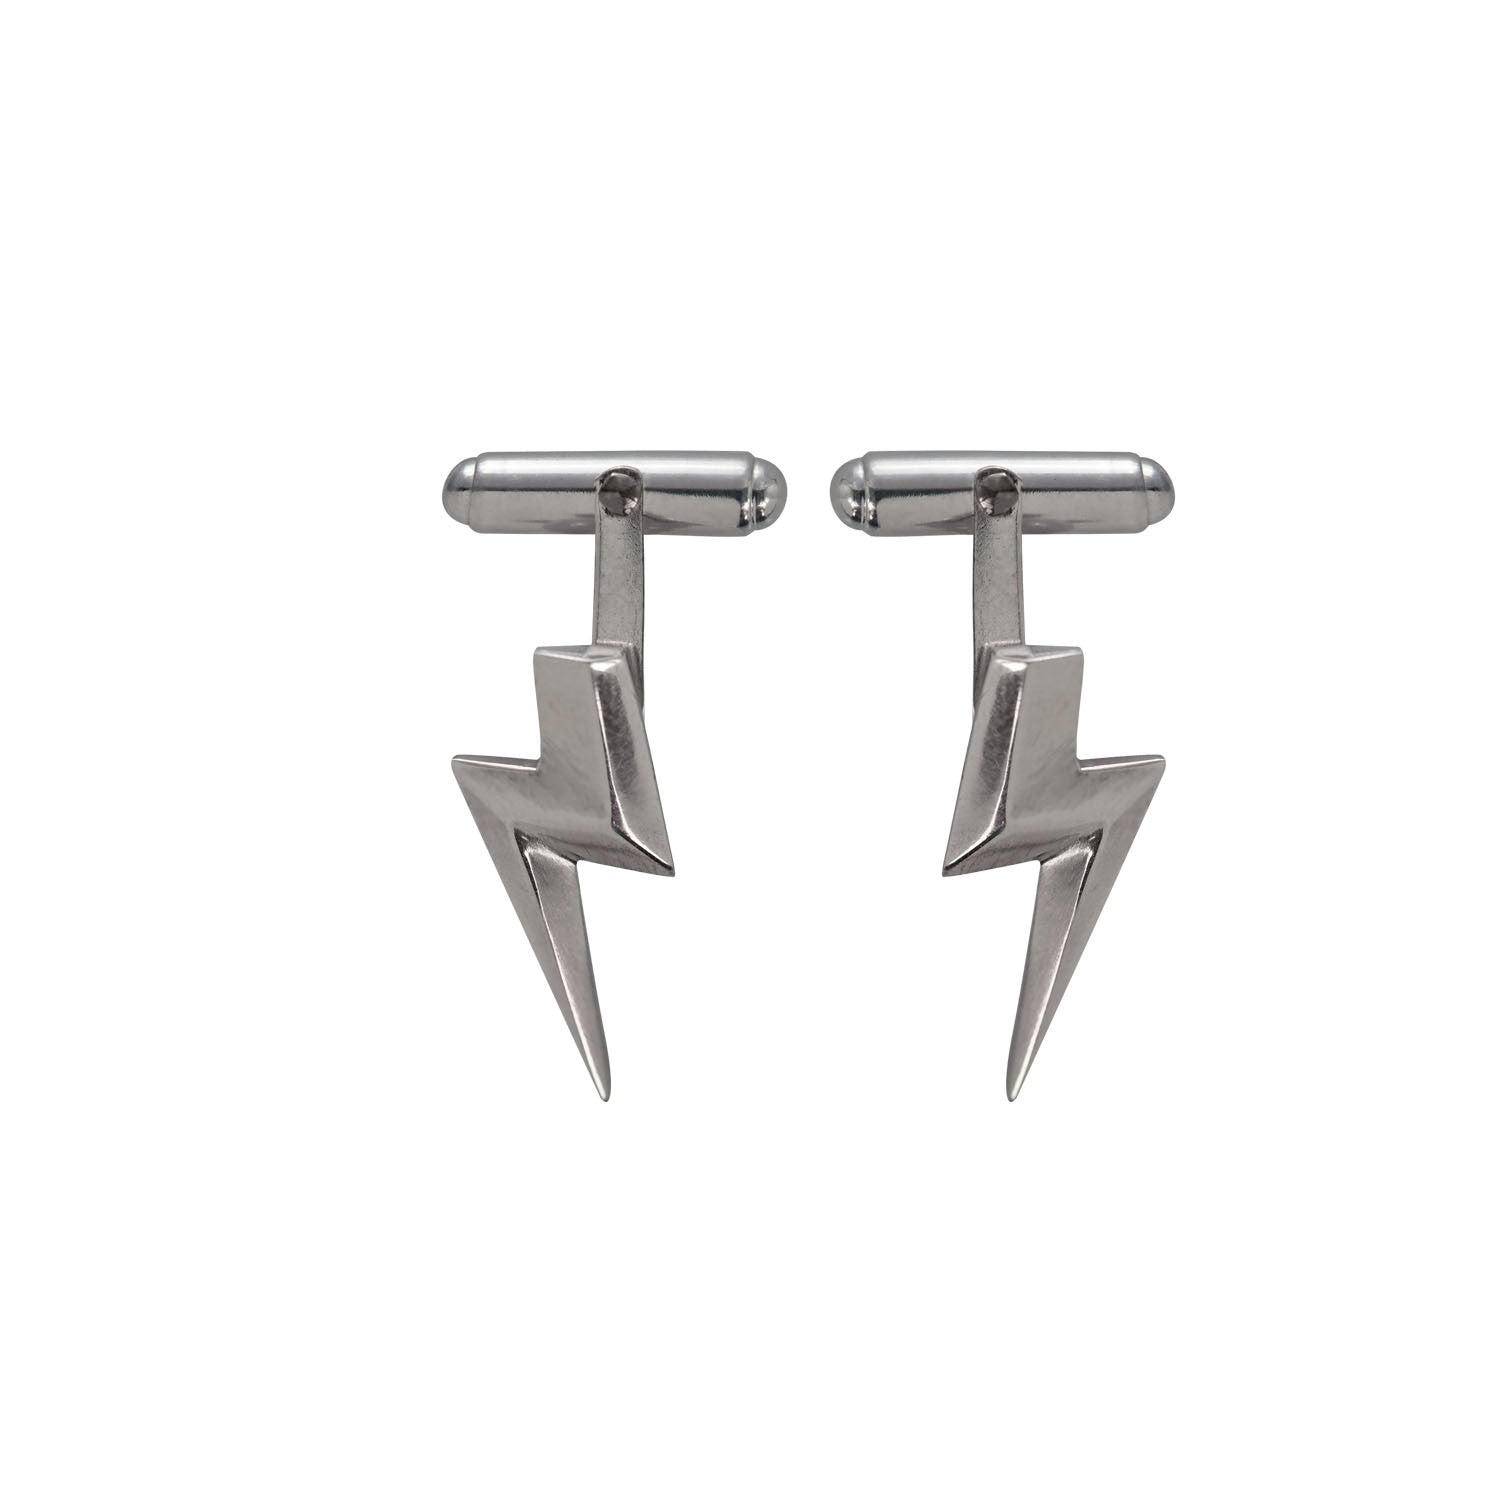 3D Flat Top Lightning Bolt Cufflinks in Sterling Silver